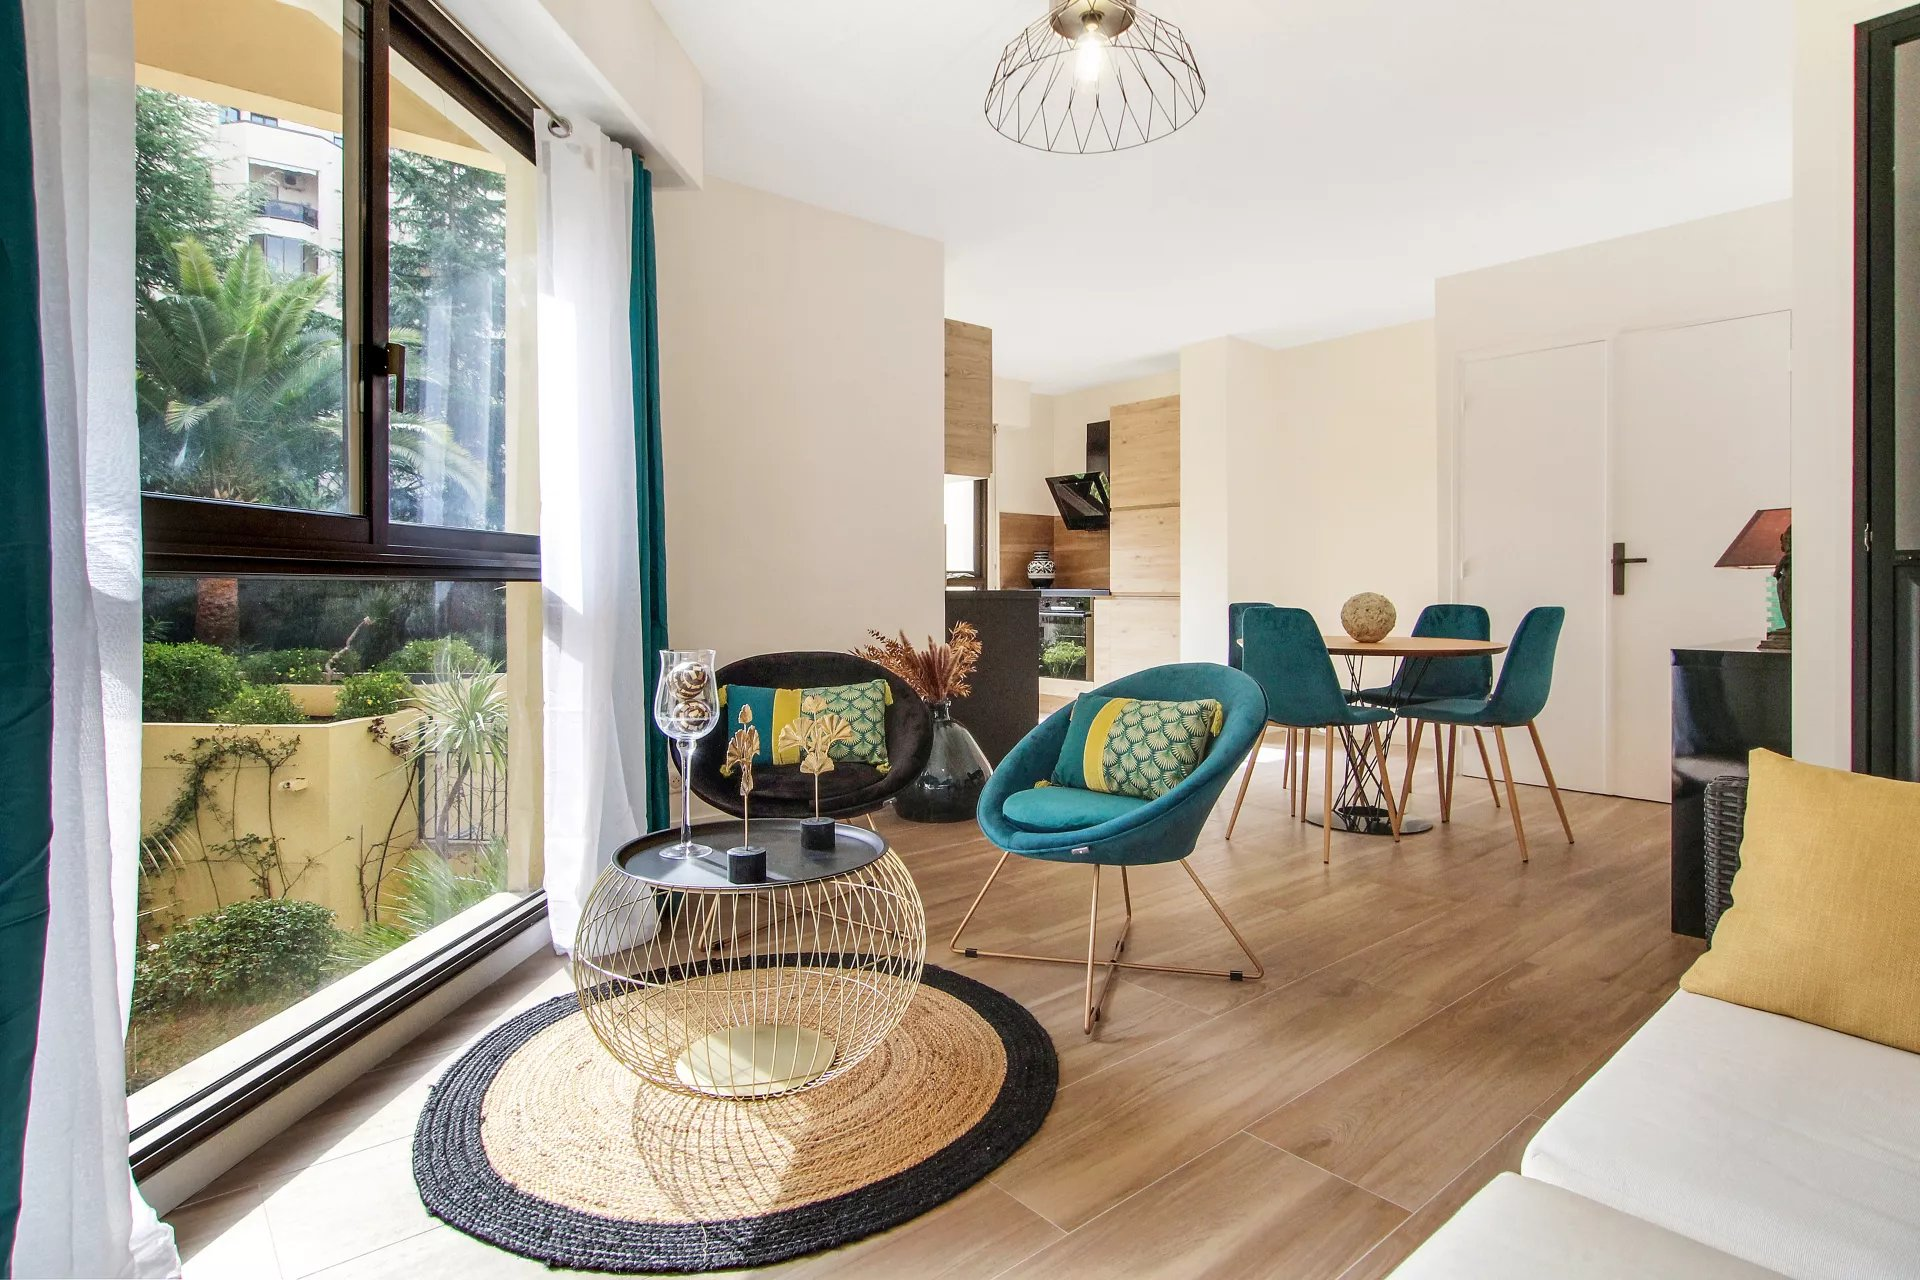 NICE MASSENA - 1Bedroom flat renovated - South facing with garden view